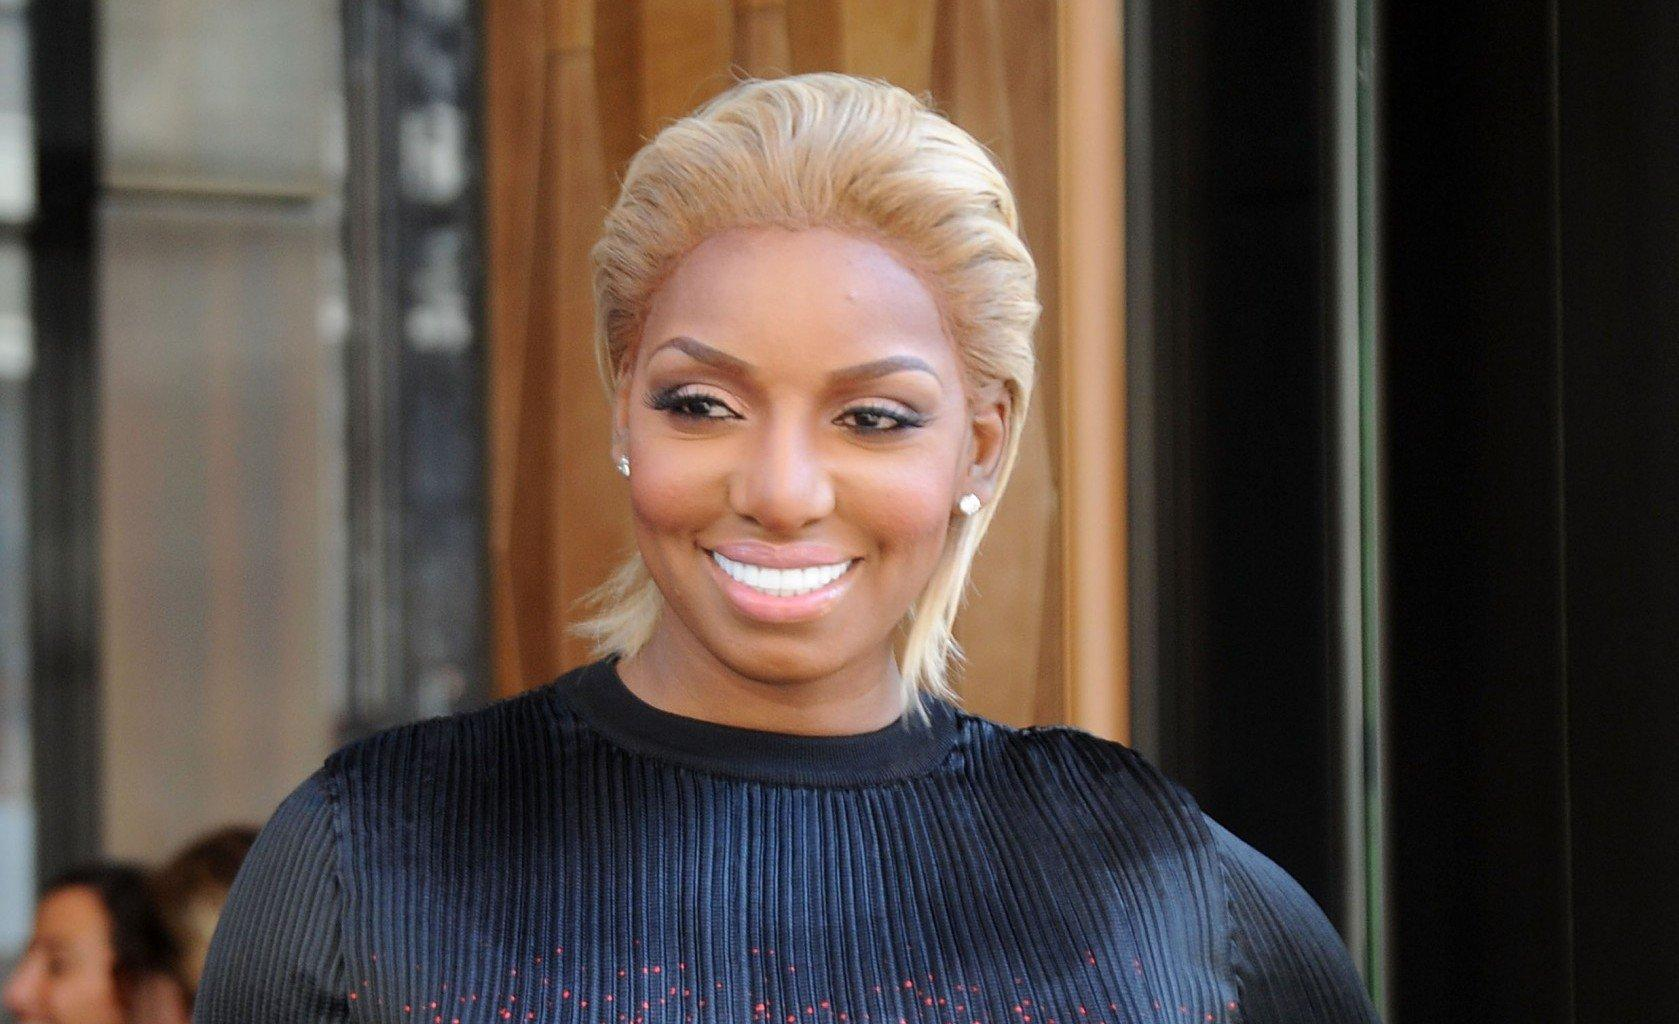 NeNe Leakes Warms People's Hearts With This Video - Check Out What She Did For A High School Kid